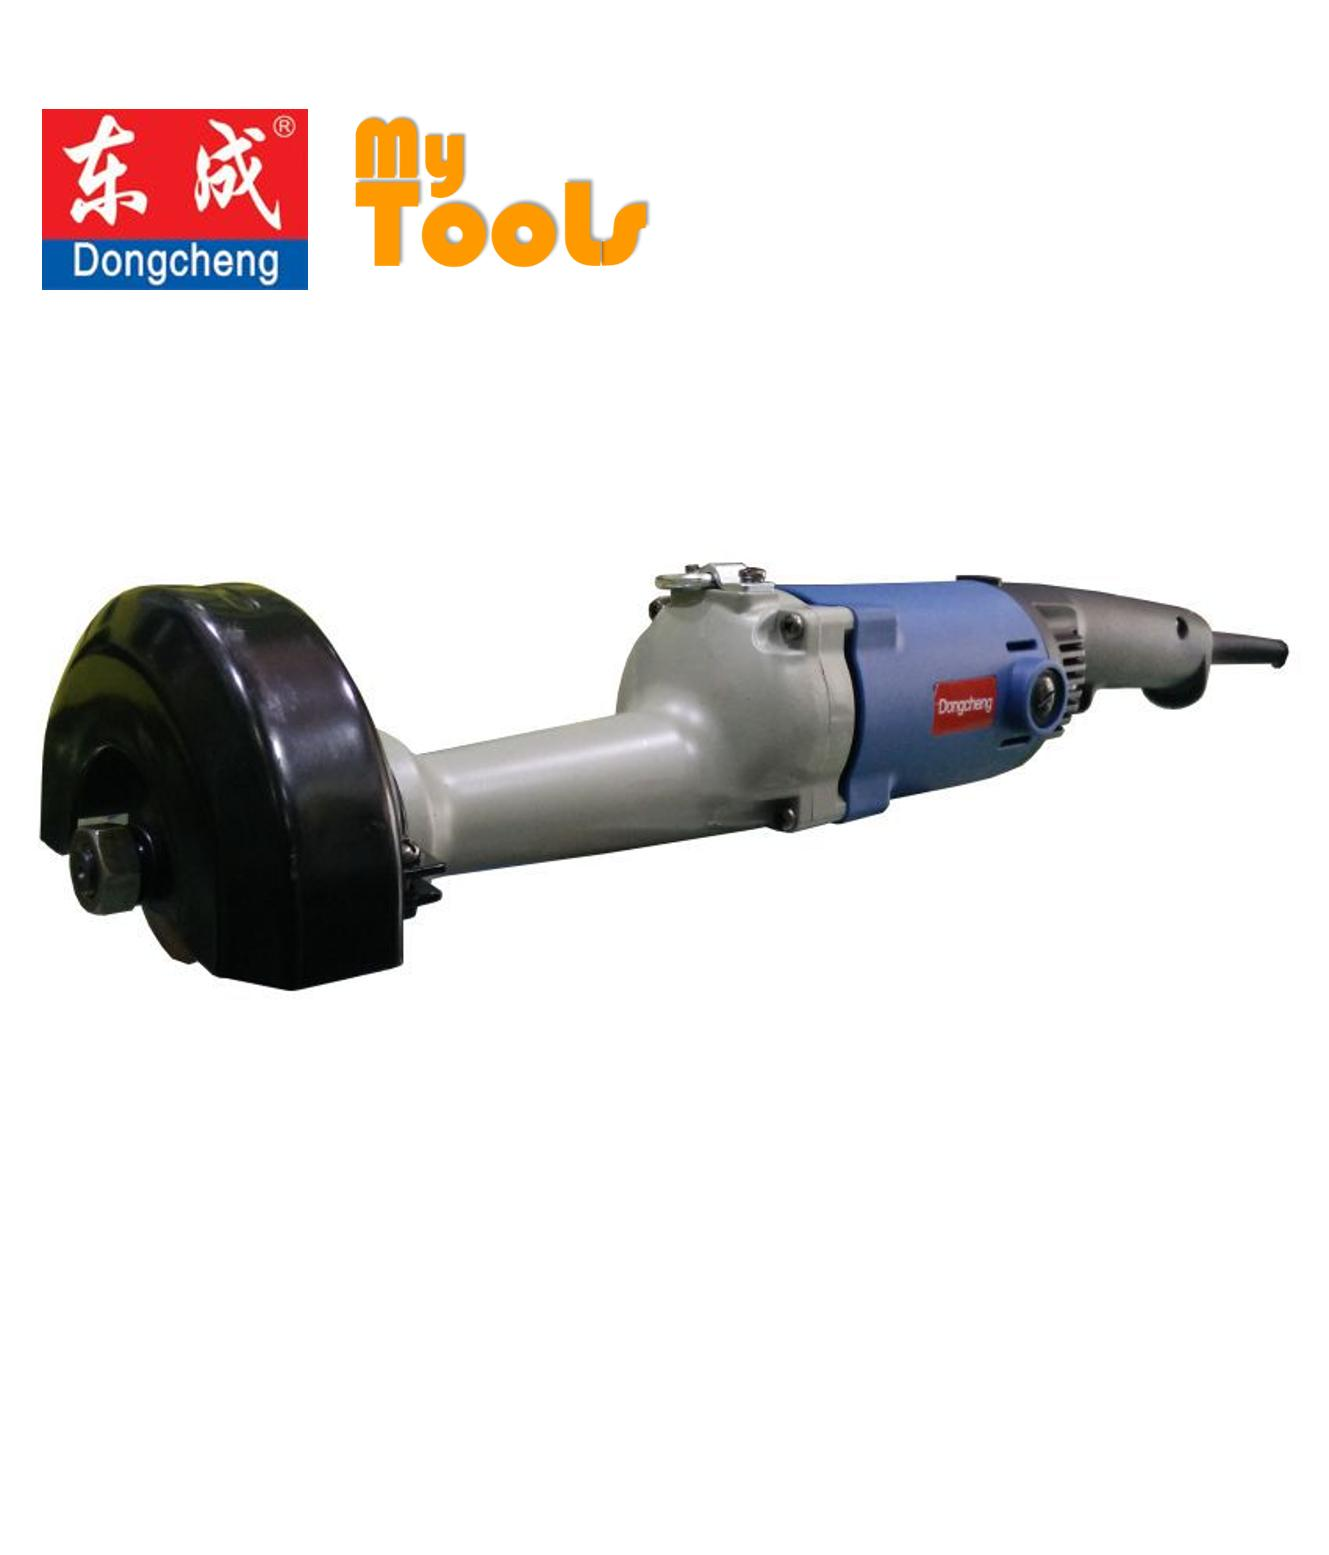 Dong Cheng DSS125B Straight Sander (6 Months Warranty)